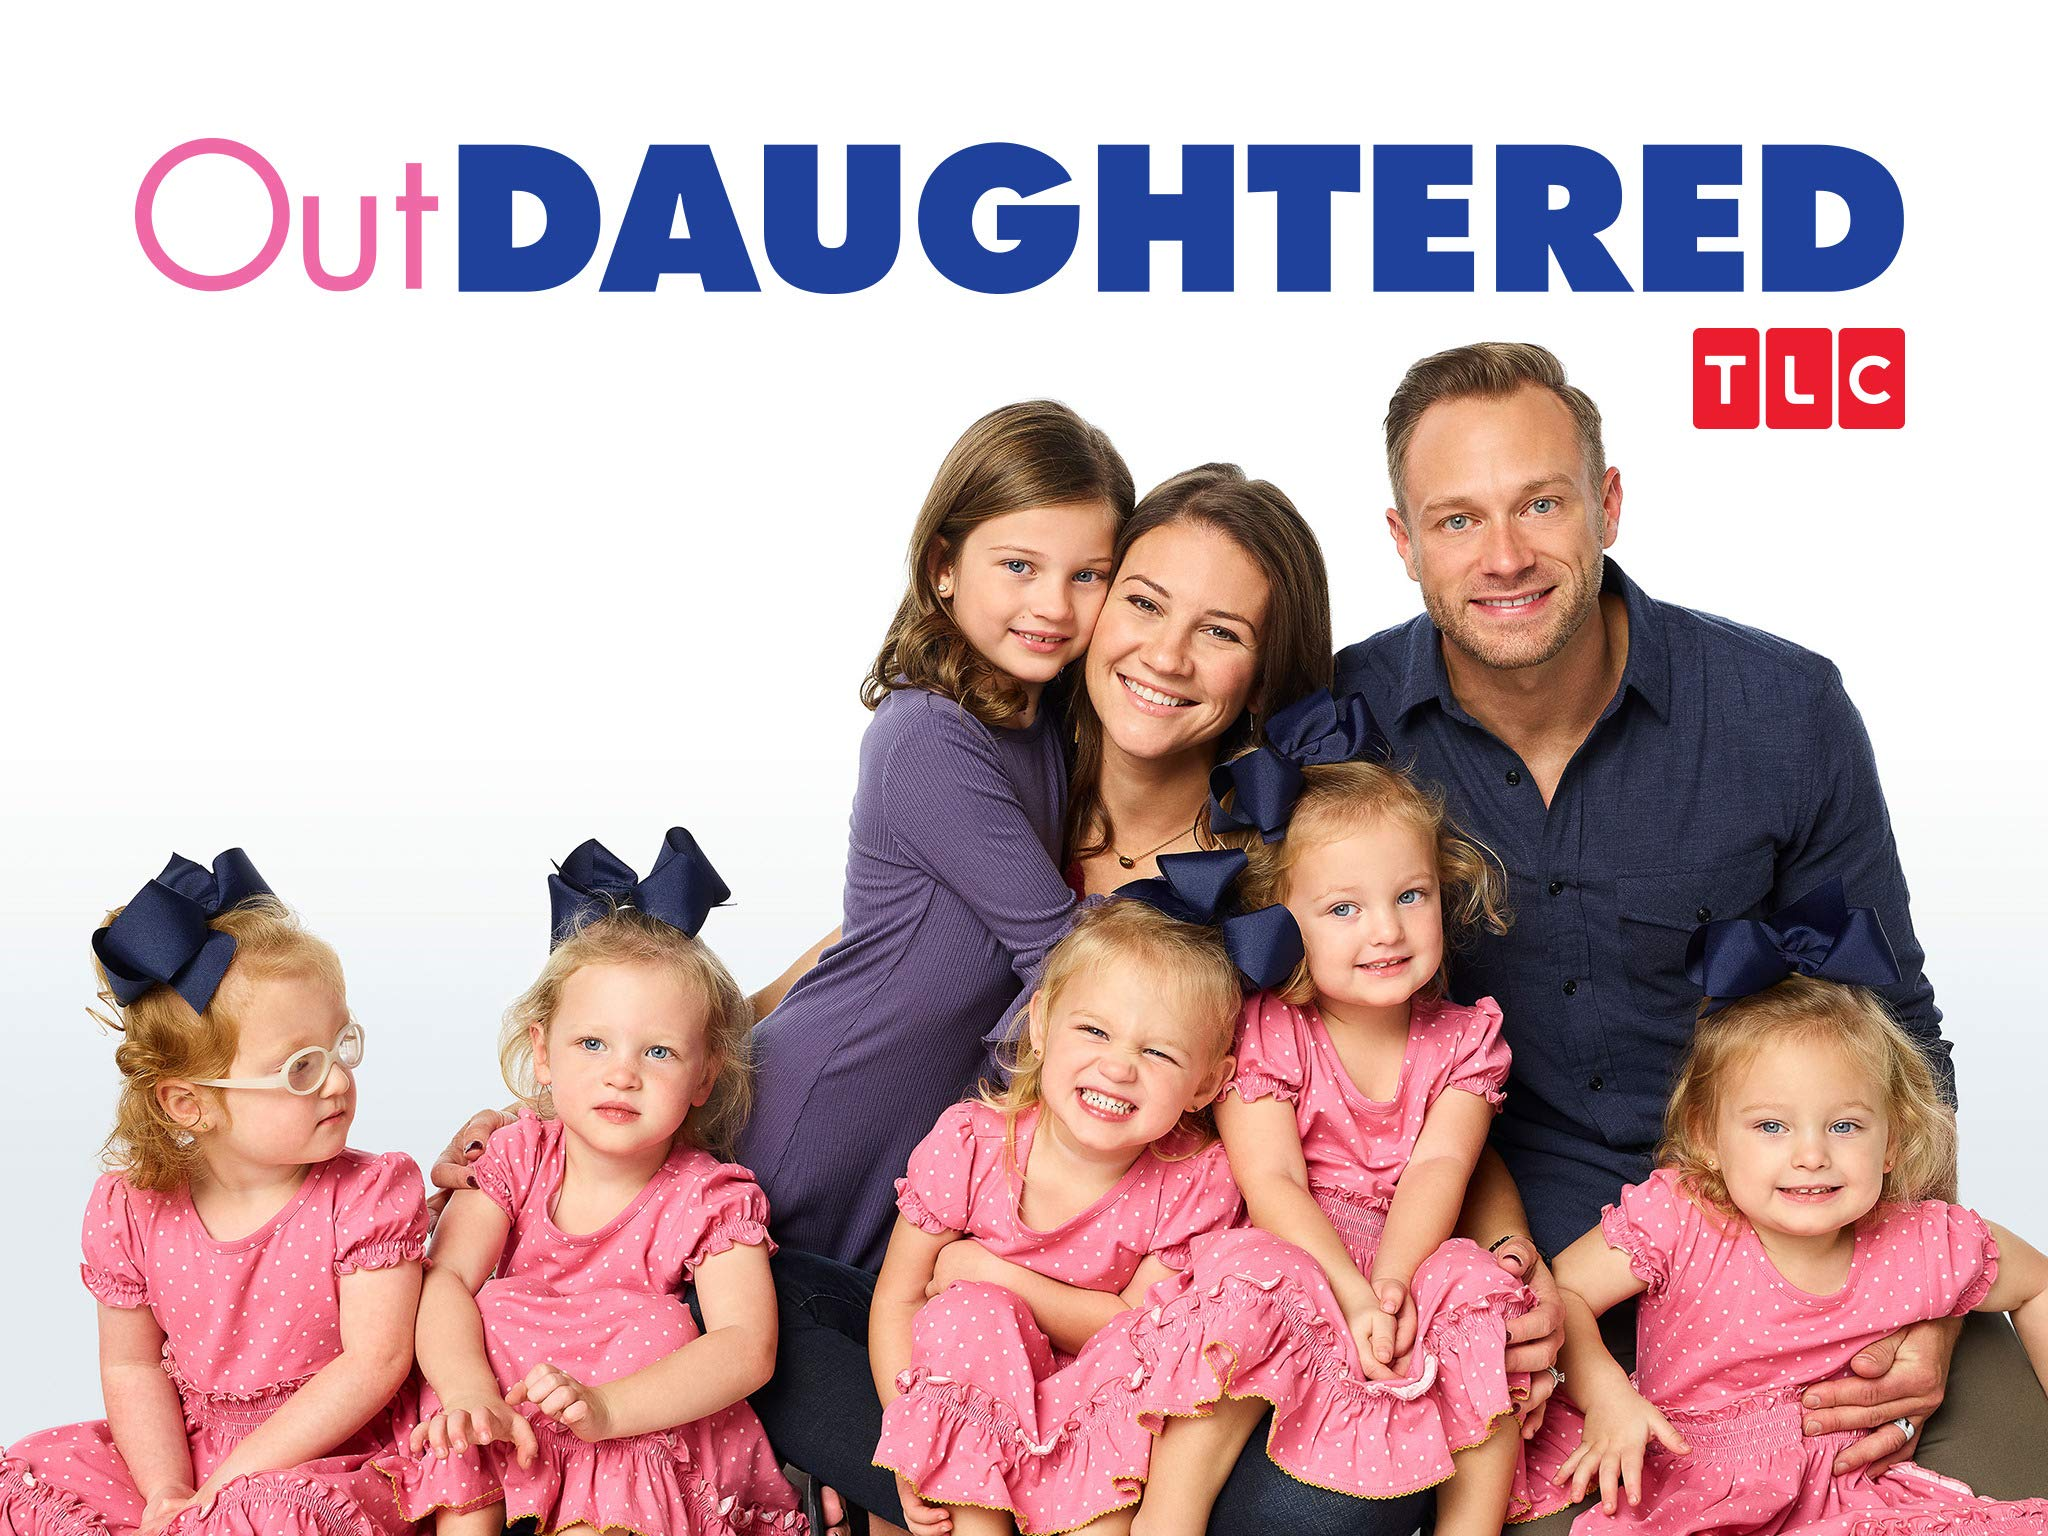 https://www.tlc.com/tv-shows/outdaughtered/